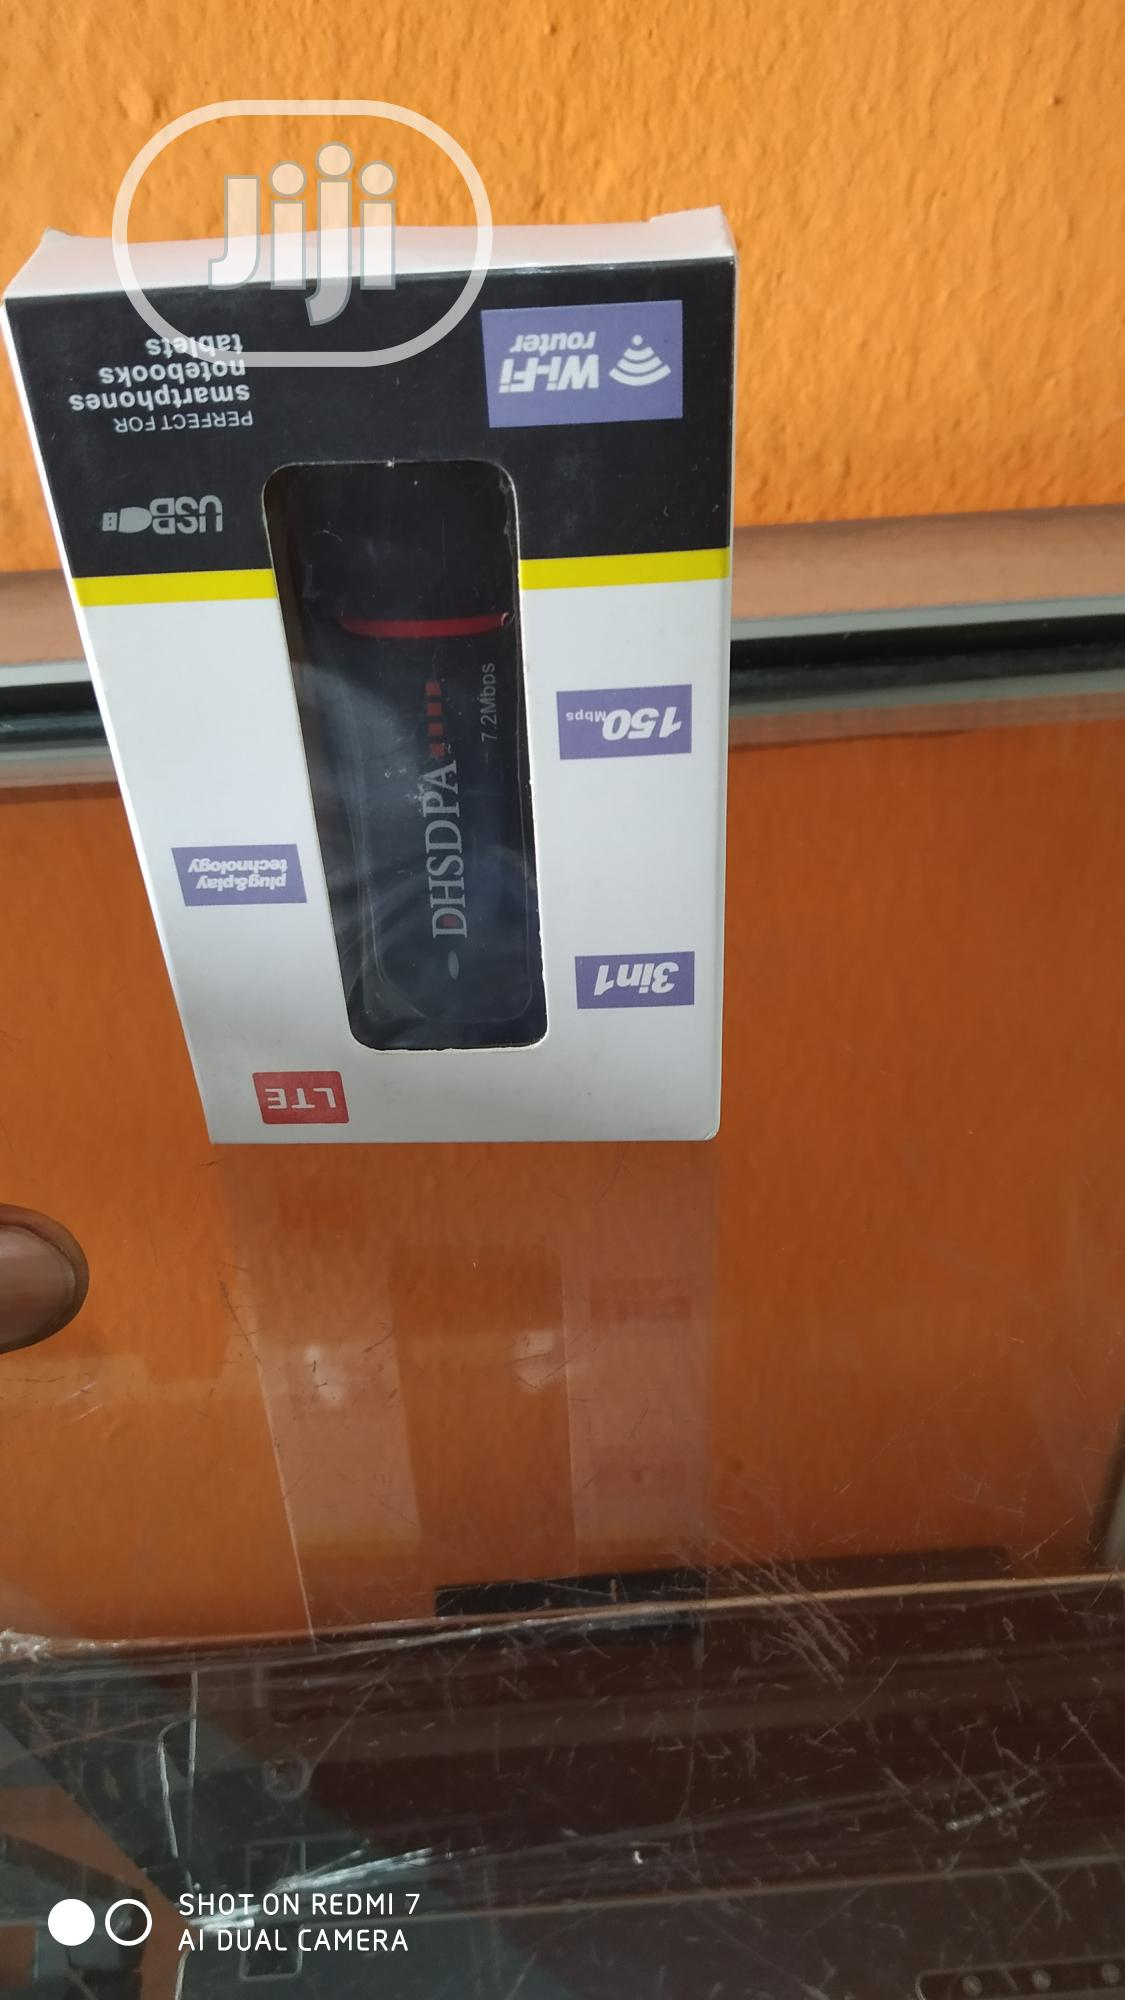 4g Universal Modem | Networking Products for sale in Owerri, Imo State, Nigeria